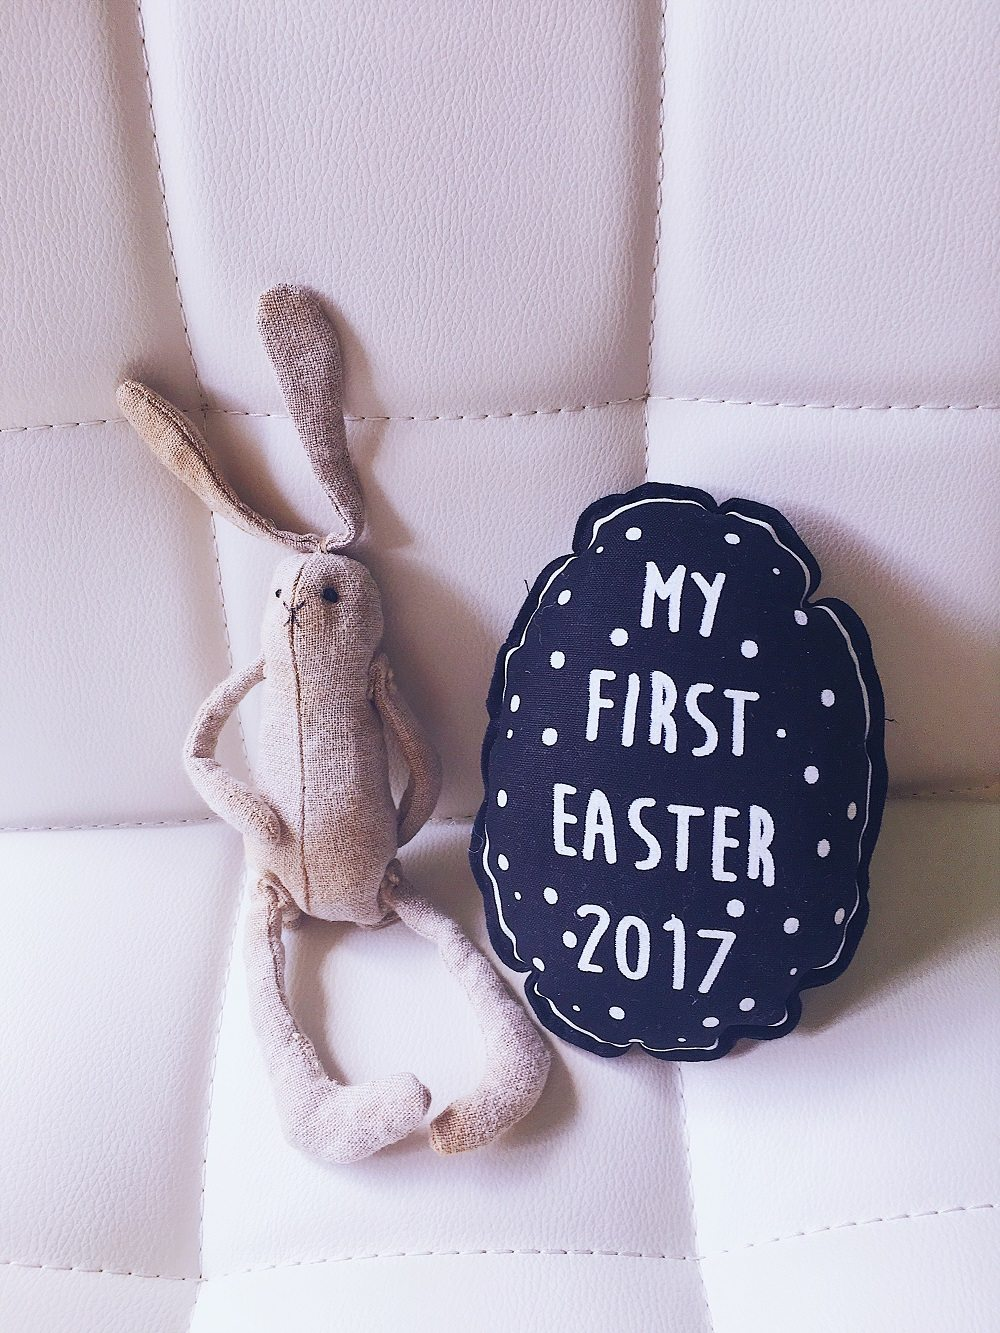 Baby's First Easter Gift Ideas - lovefrommim.com Love from Mim, Easter Gifts, Easter, Easter Gifts for Babies, Baby Easter Gifts, Easter Presents, Baby's First Easter, Hamper, Easter Hamper, Baby Gifts, Baby Gift Ideas, New Baby, Newborn, Baby, Babies, Newborn Baby Gift Ideas, My First Easter Rattle from Babee and Me